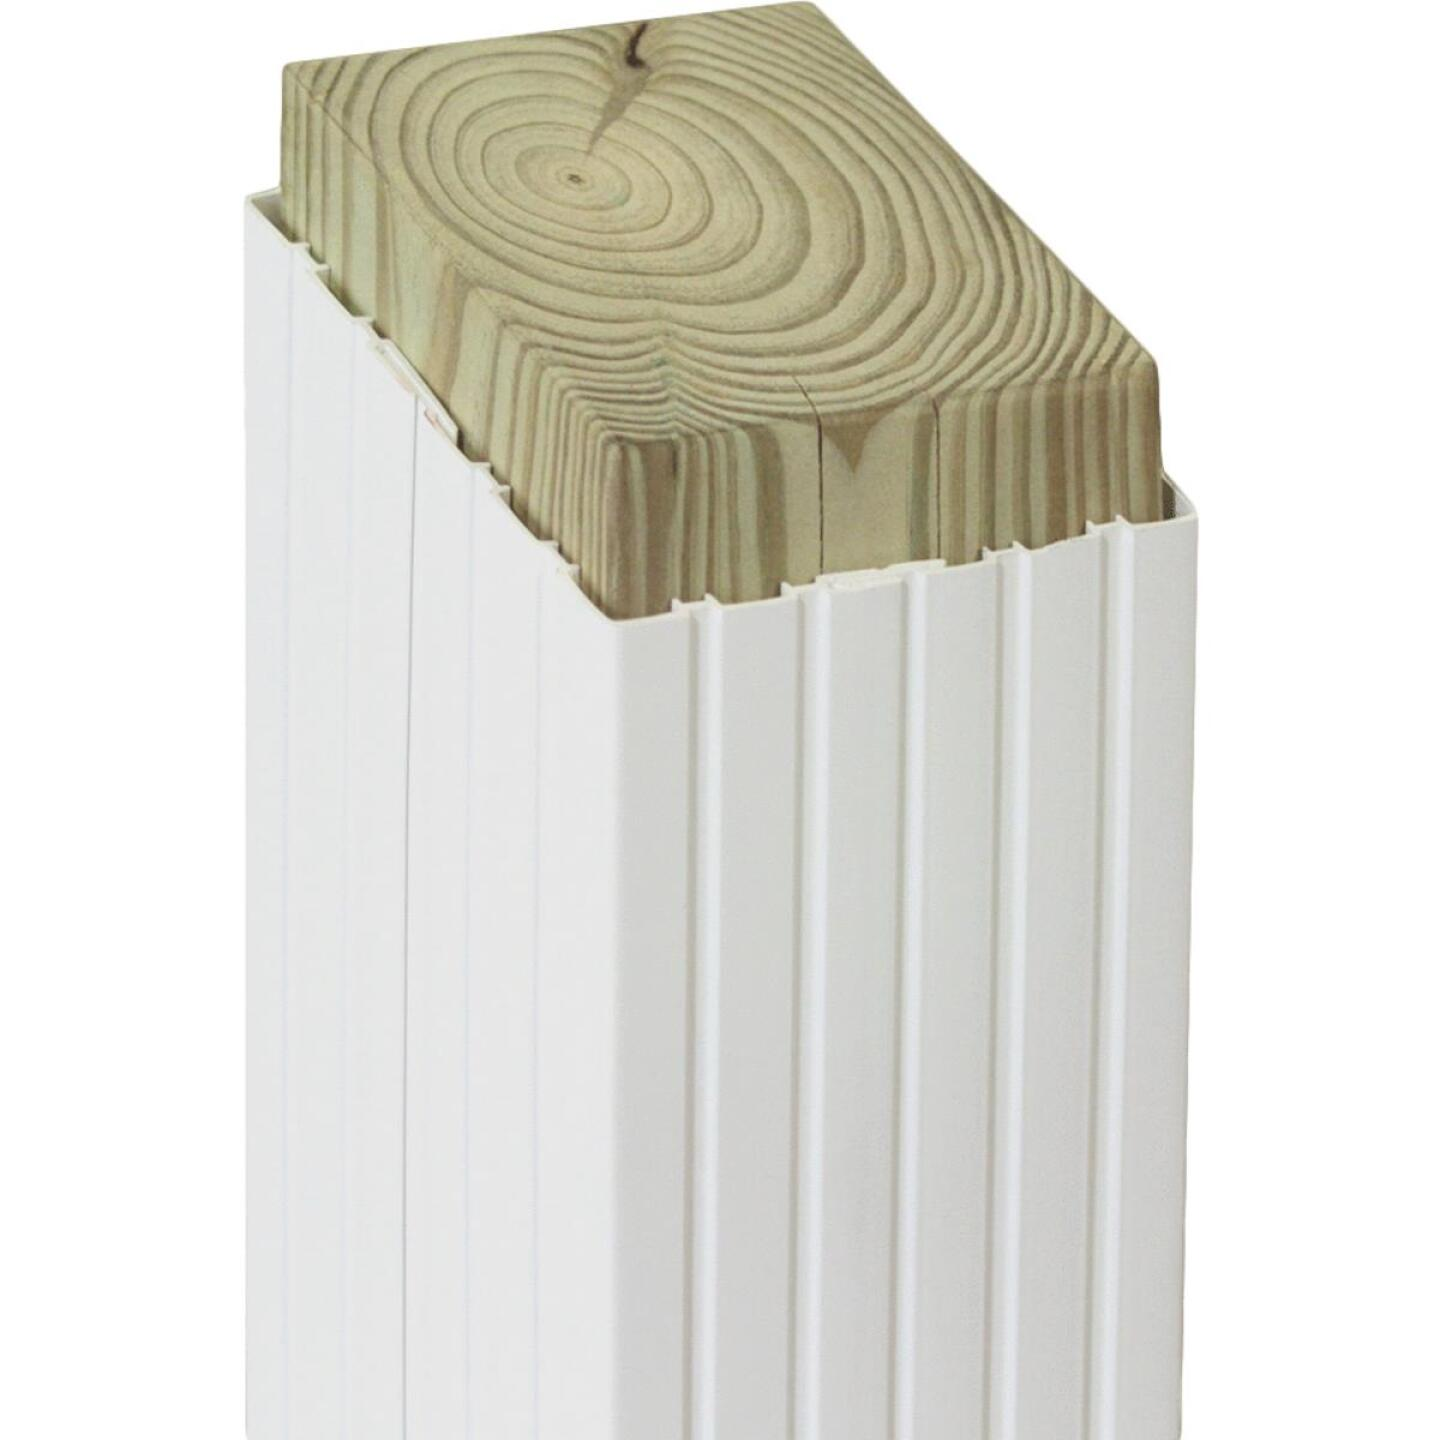 Beechdale 4 In. W x 4 In. H x 102 In. L White PVC Fluted Post Wrap Image 1